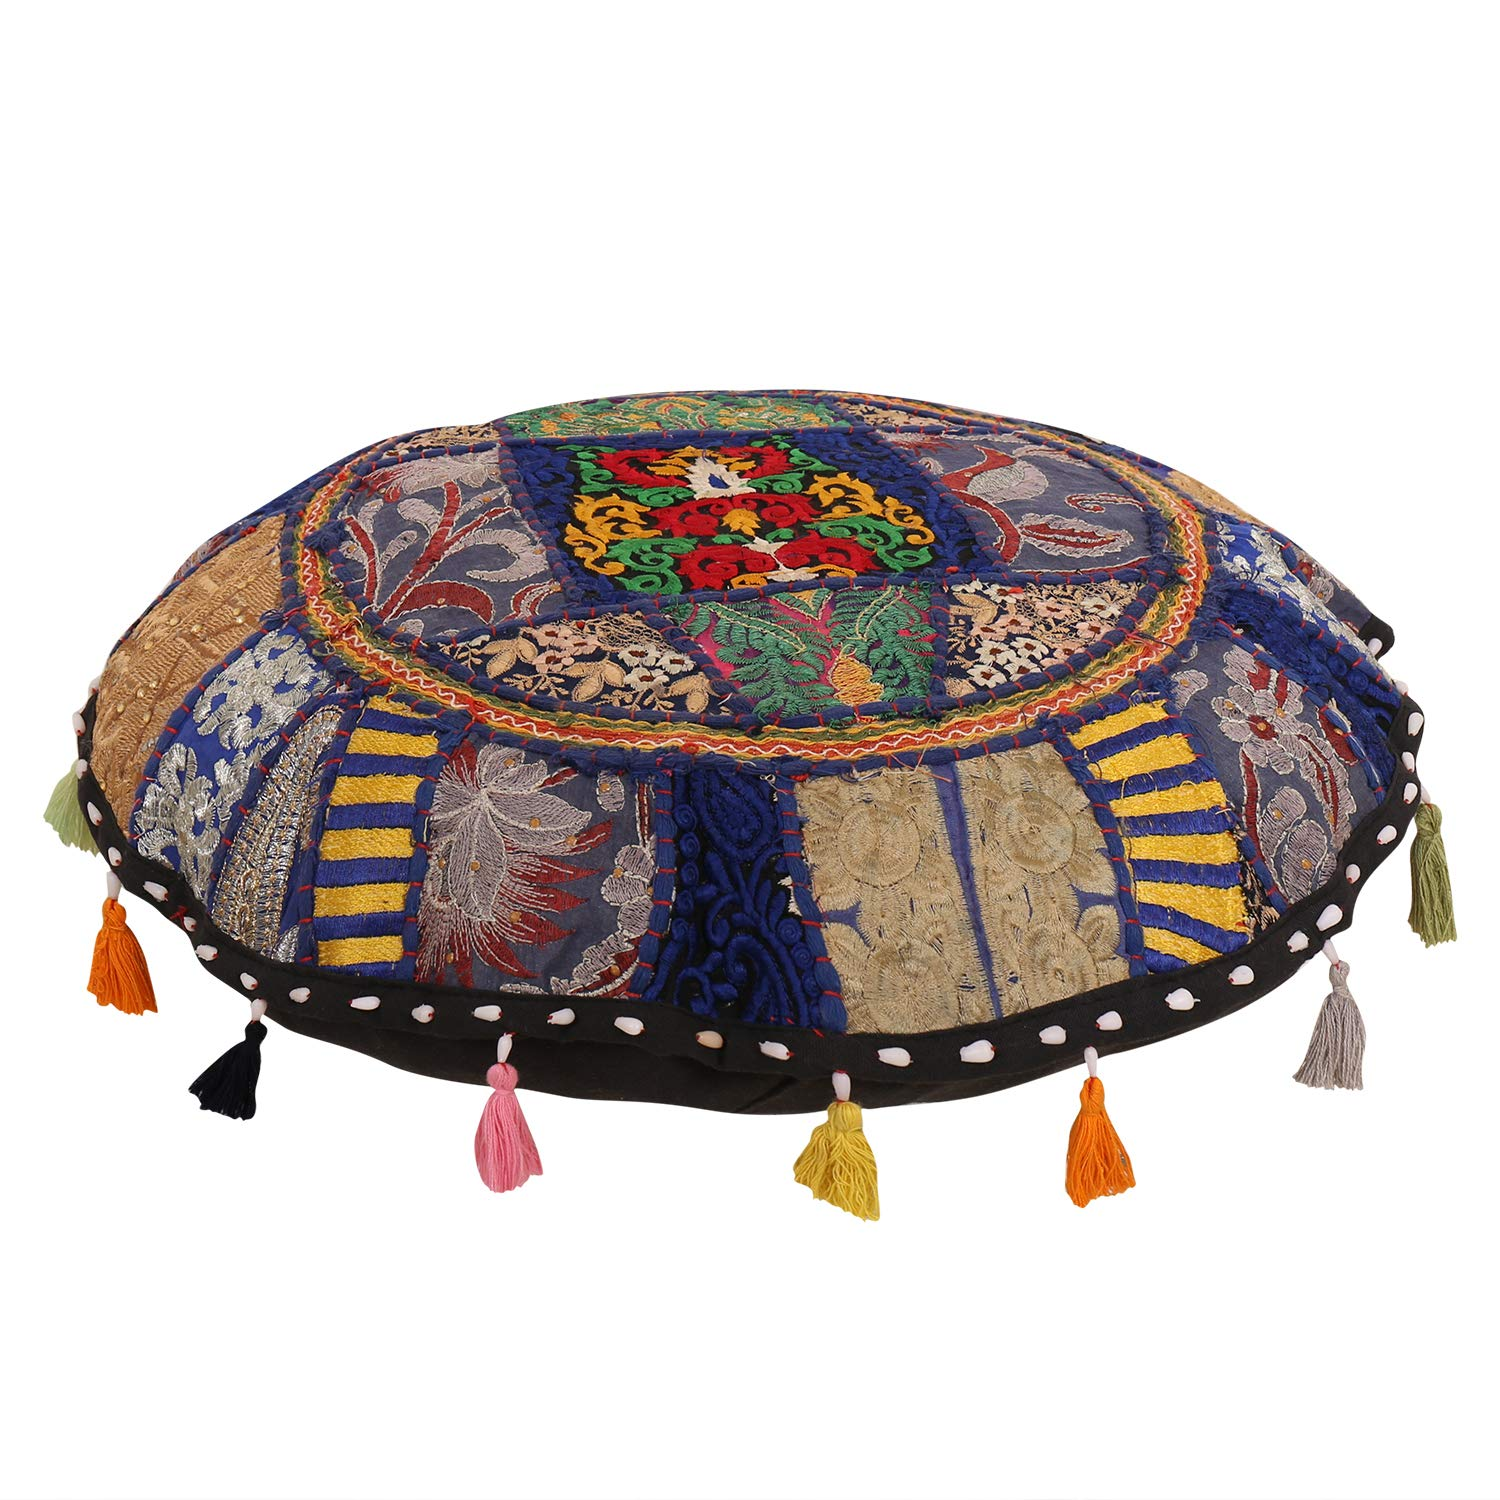 Beautiful Decorative Ruond Ottoman Indian Patchwork Pouffe,Indian Traditional Home Decorative Handmade Cotton Ottoman Patchwork Foot Stool, Embroidered Chair Cover Vintage Pouf 16 Indian Cushion Set